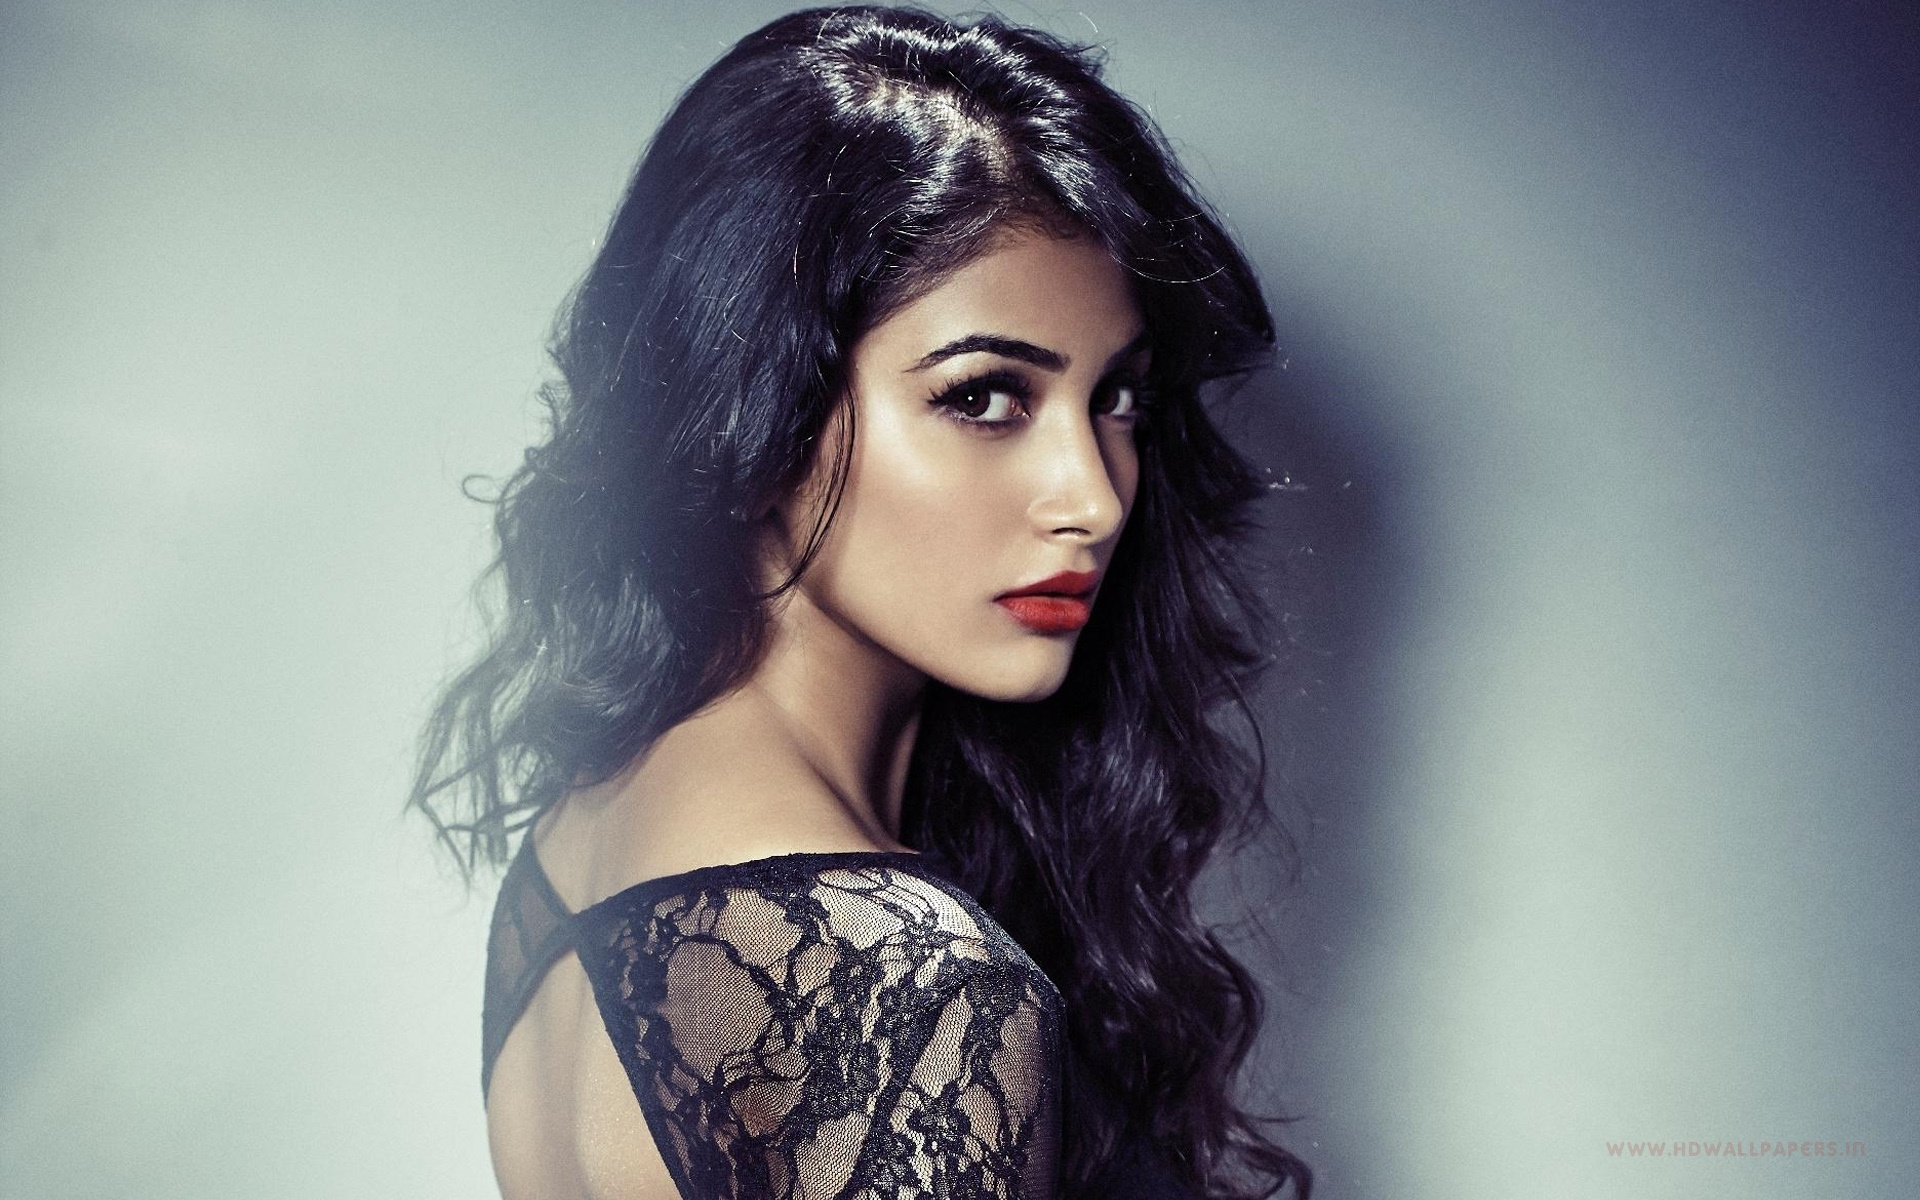 Actress Wallpapers Download Free: Pooja Hegde Indian Actress Wallpapers In Jpg Format For